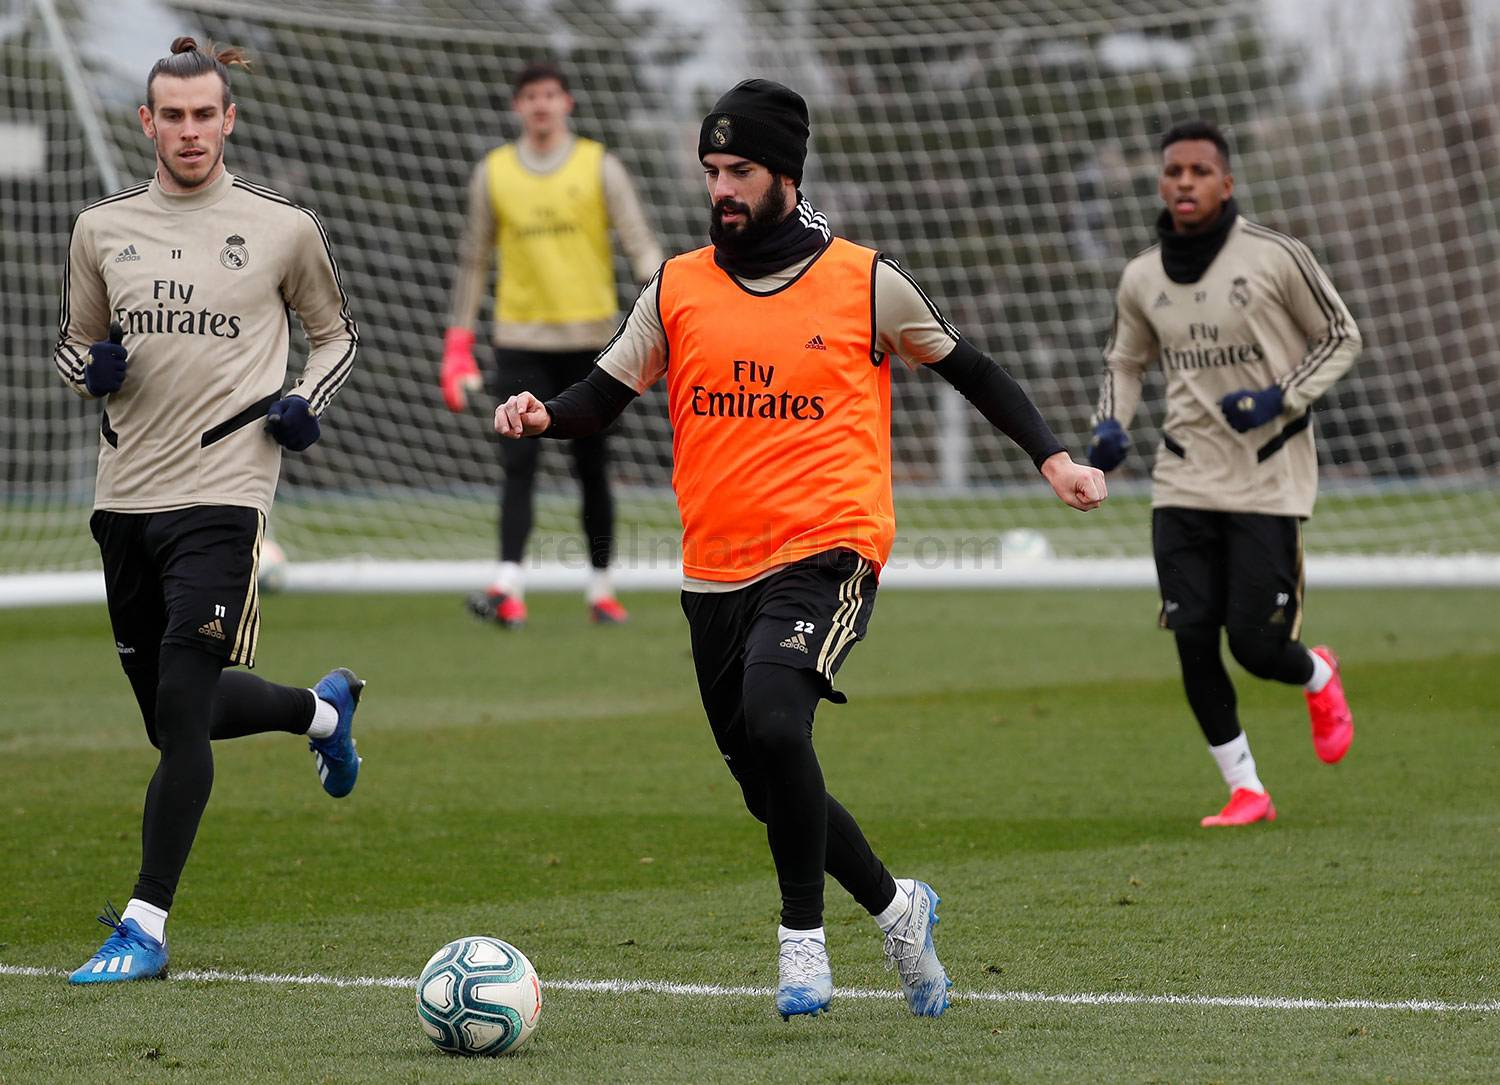 Real Madrid - Entrenamiento del Real Madrid  - 30-01-2020